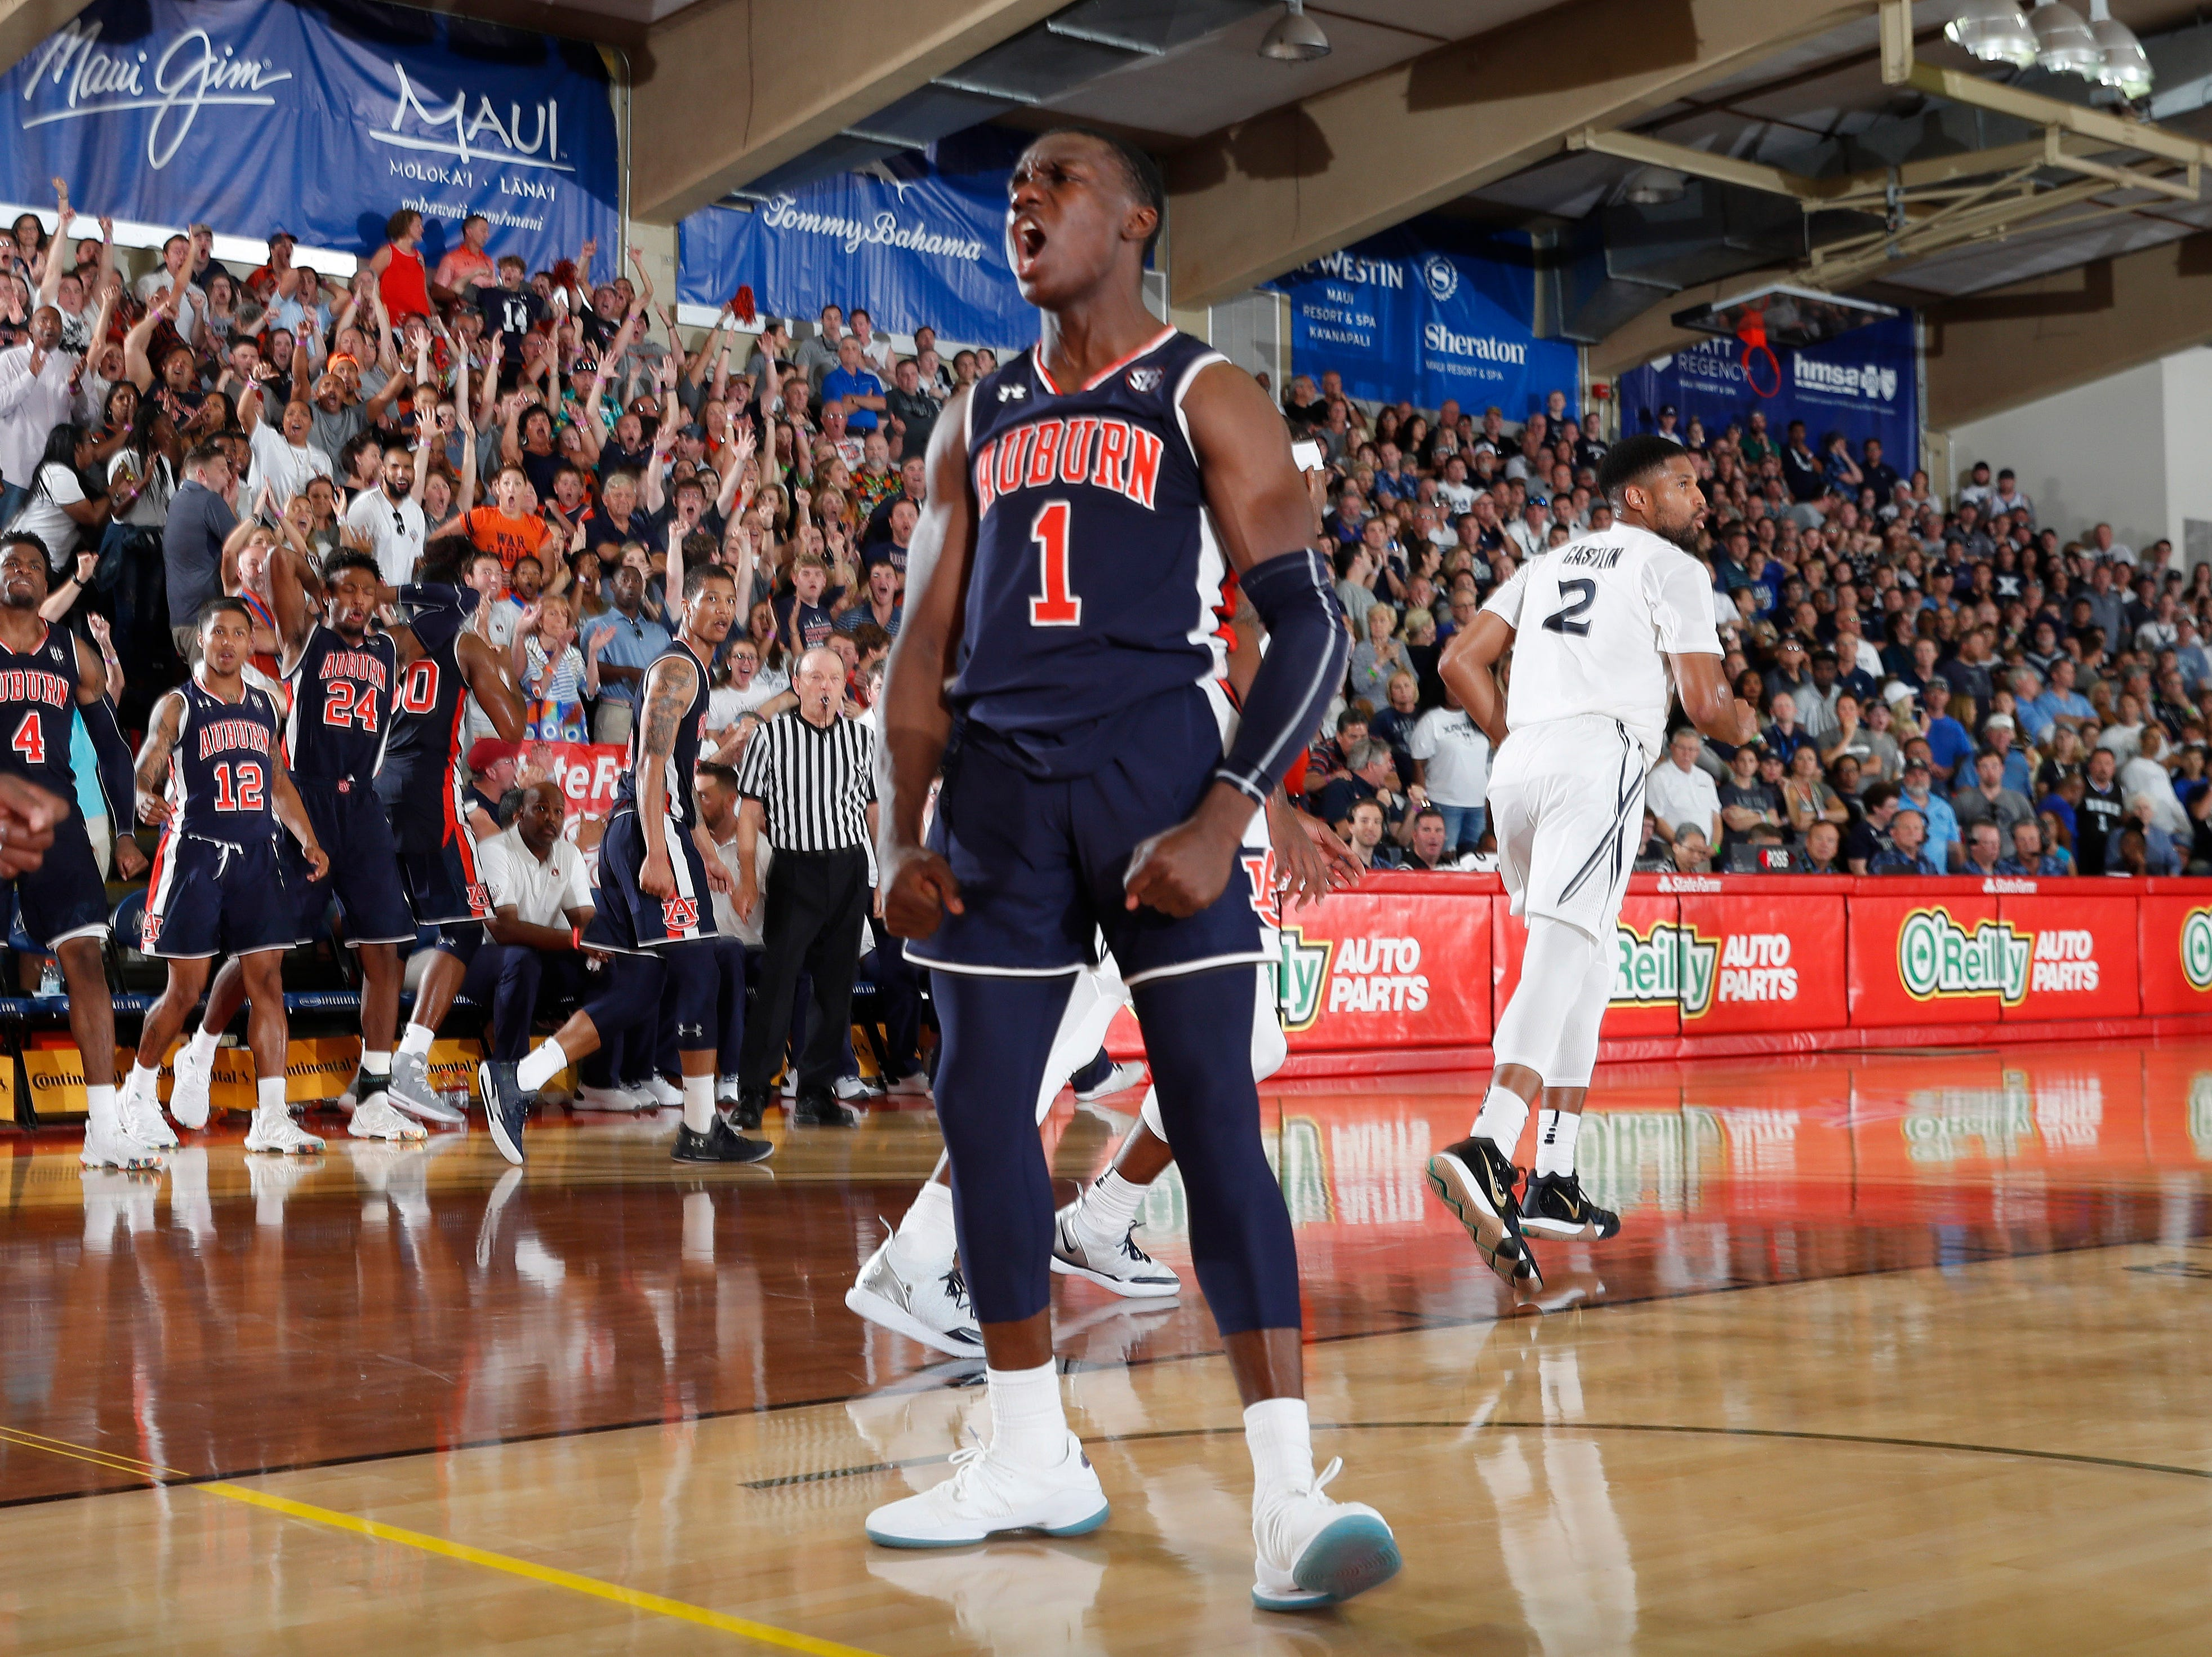 Nov 19, 2018; Lahaina, HI, USA; Auburn Tigers guard Jared Harper (1) reacts after dunking against the Xavier Musketeers in the second half during the first round games of the Maui Jim Maui Invitational at Lahaina Civic Center. Mandatory Credit: Brian Spurlock-USA TODAY Sports